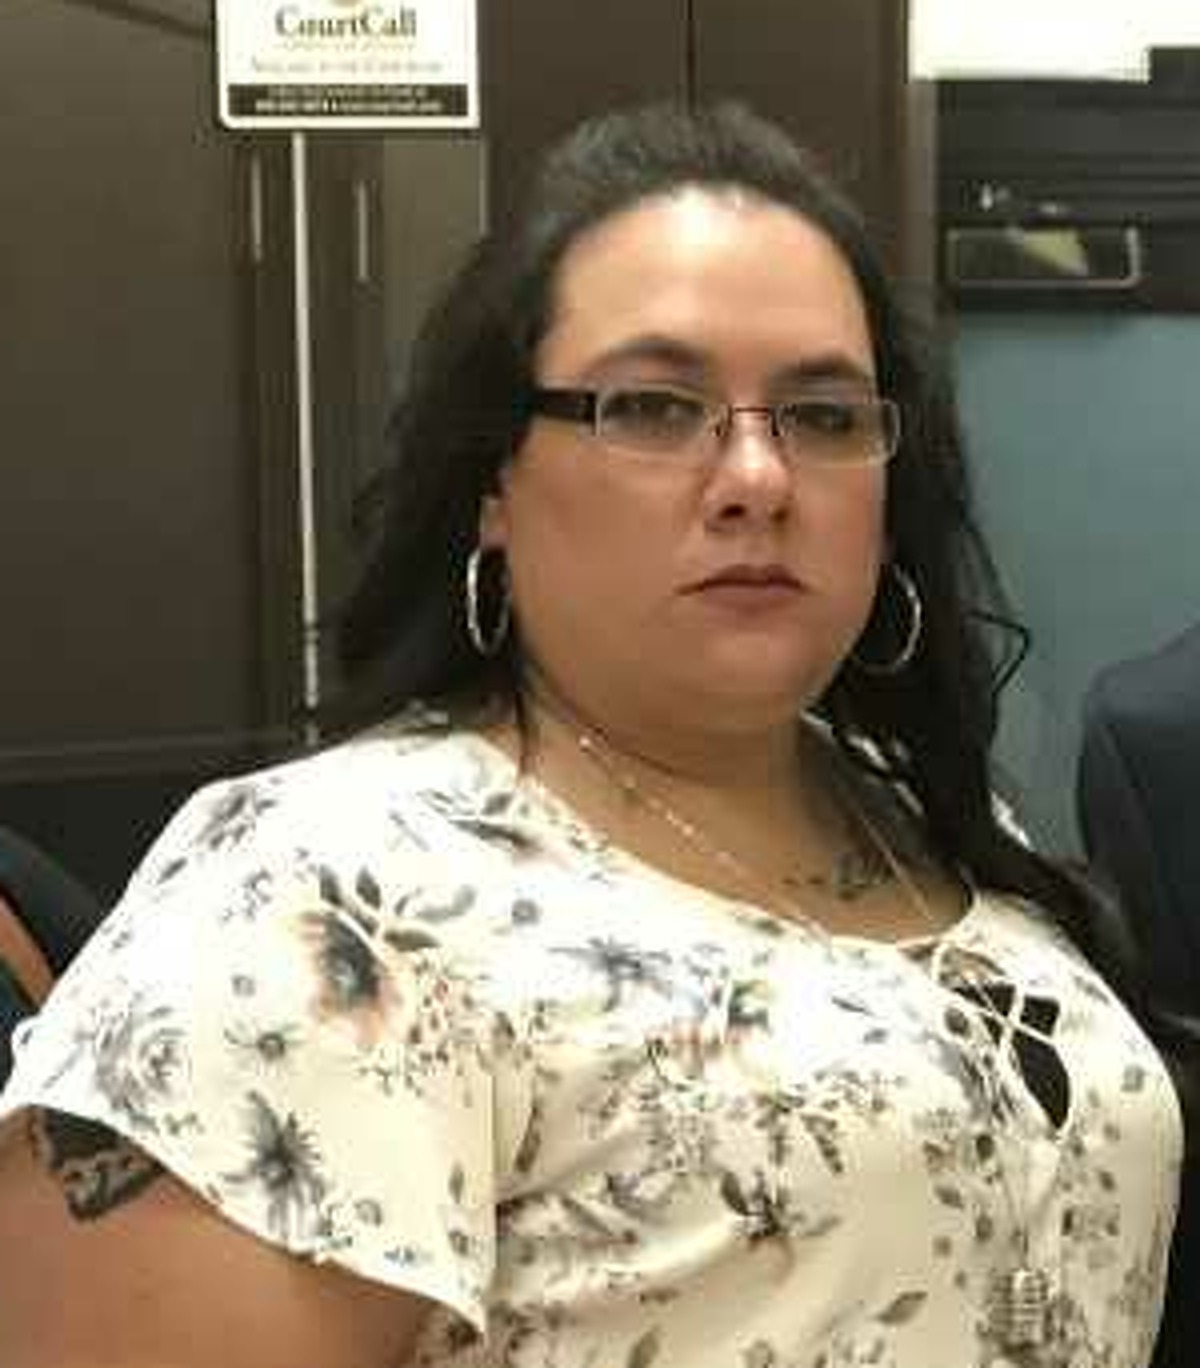 Criminal charges against Laredo media personality and citizen journalist Priscilla